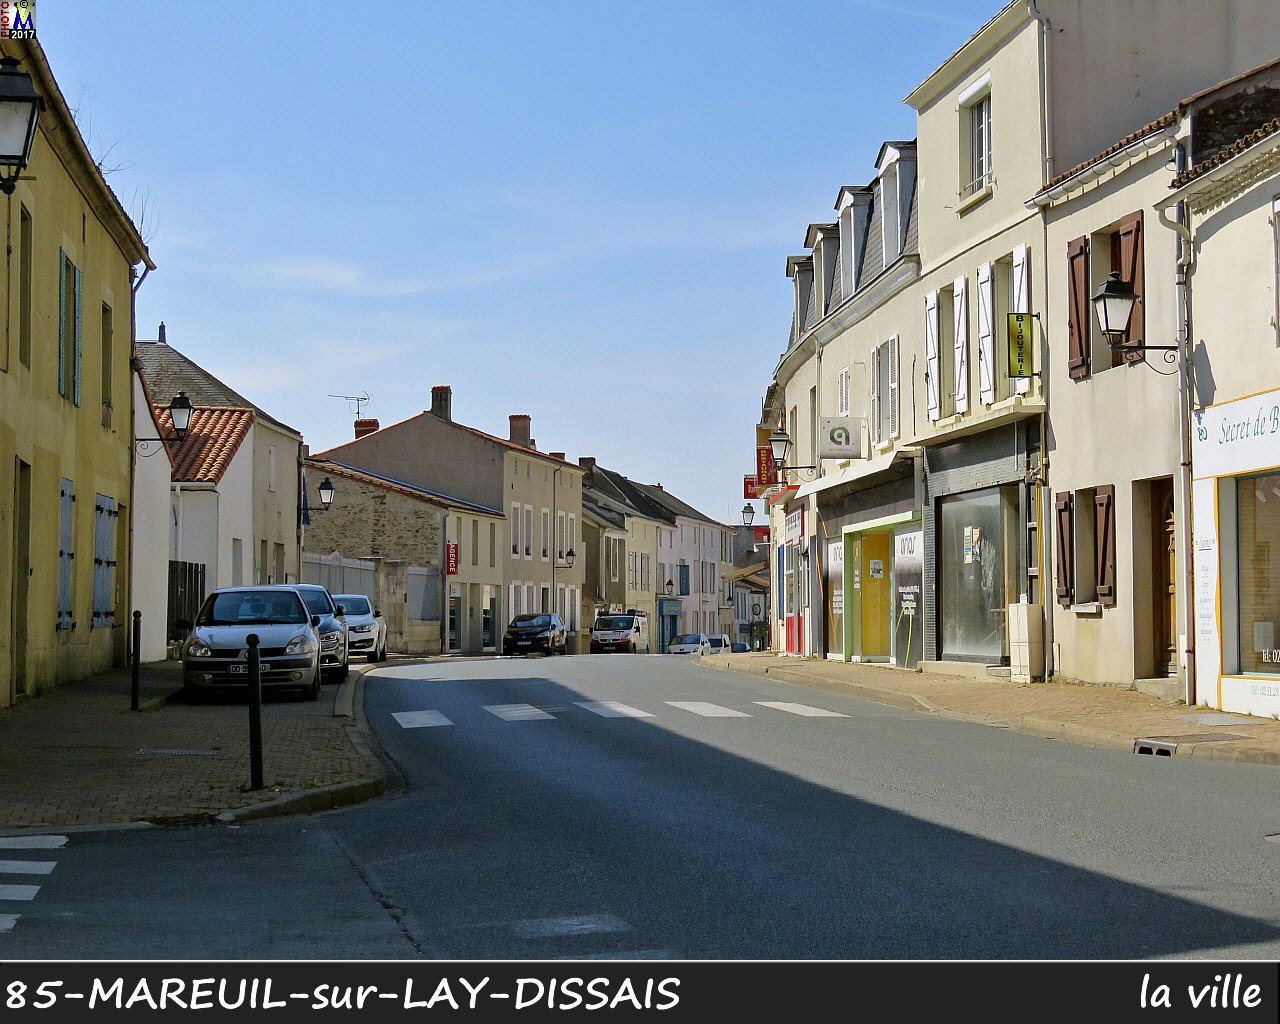 85MAREUIL-LAY_ville_1012.jpg